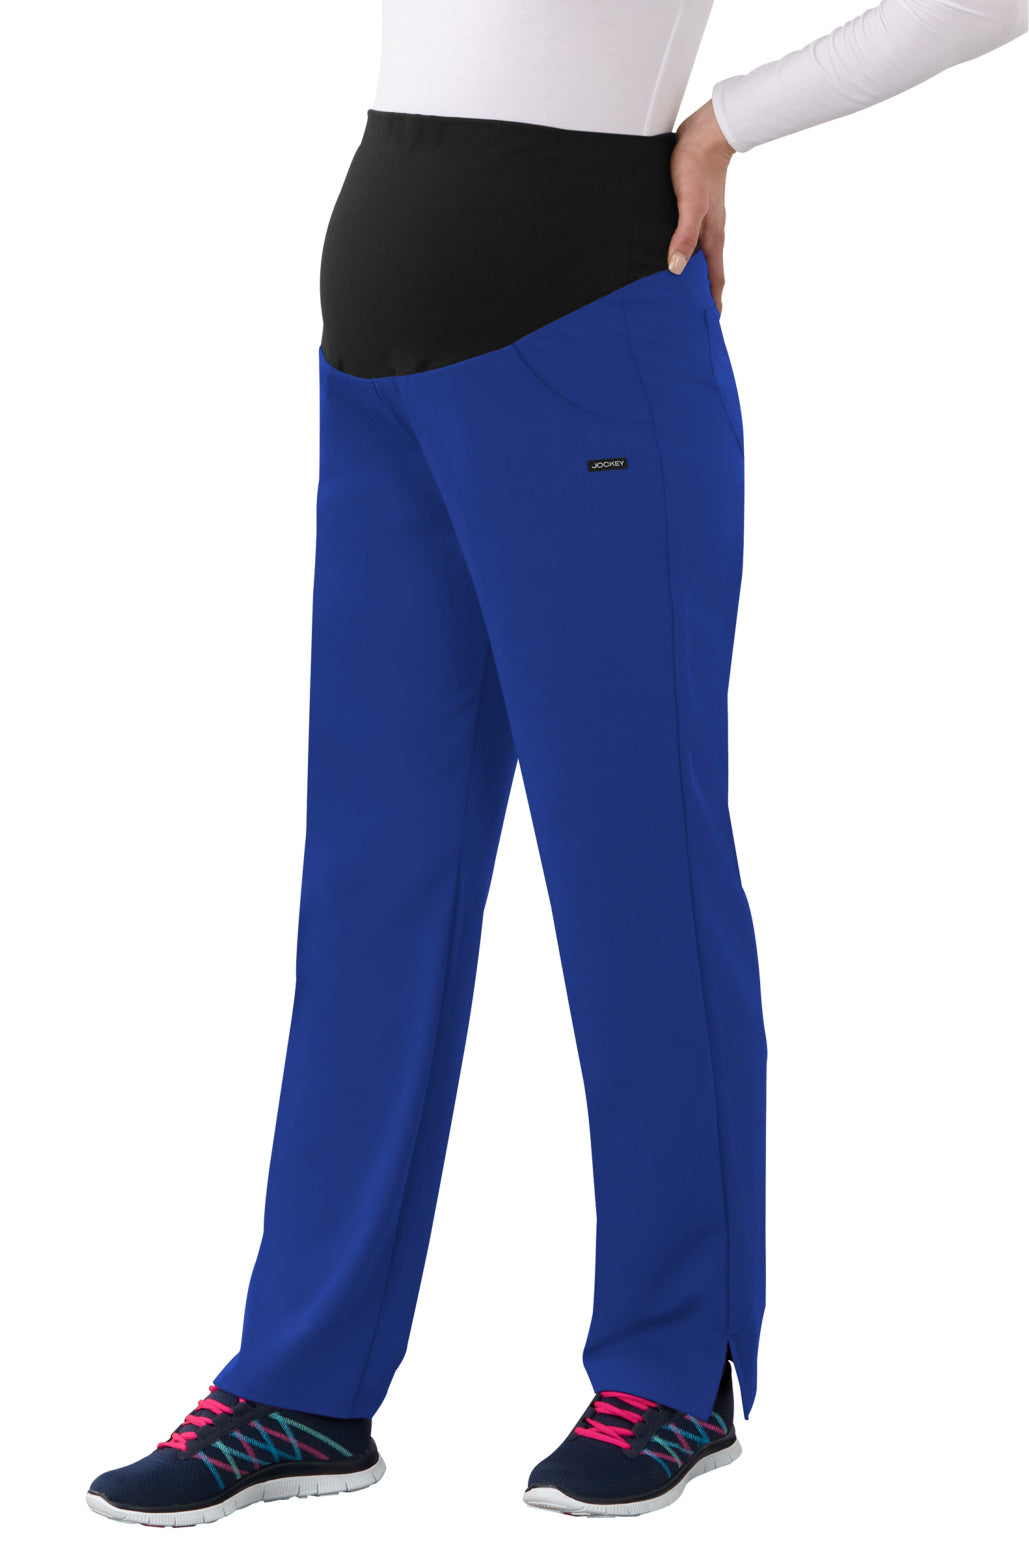 Jockey Maternity Yoga Pant 2459